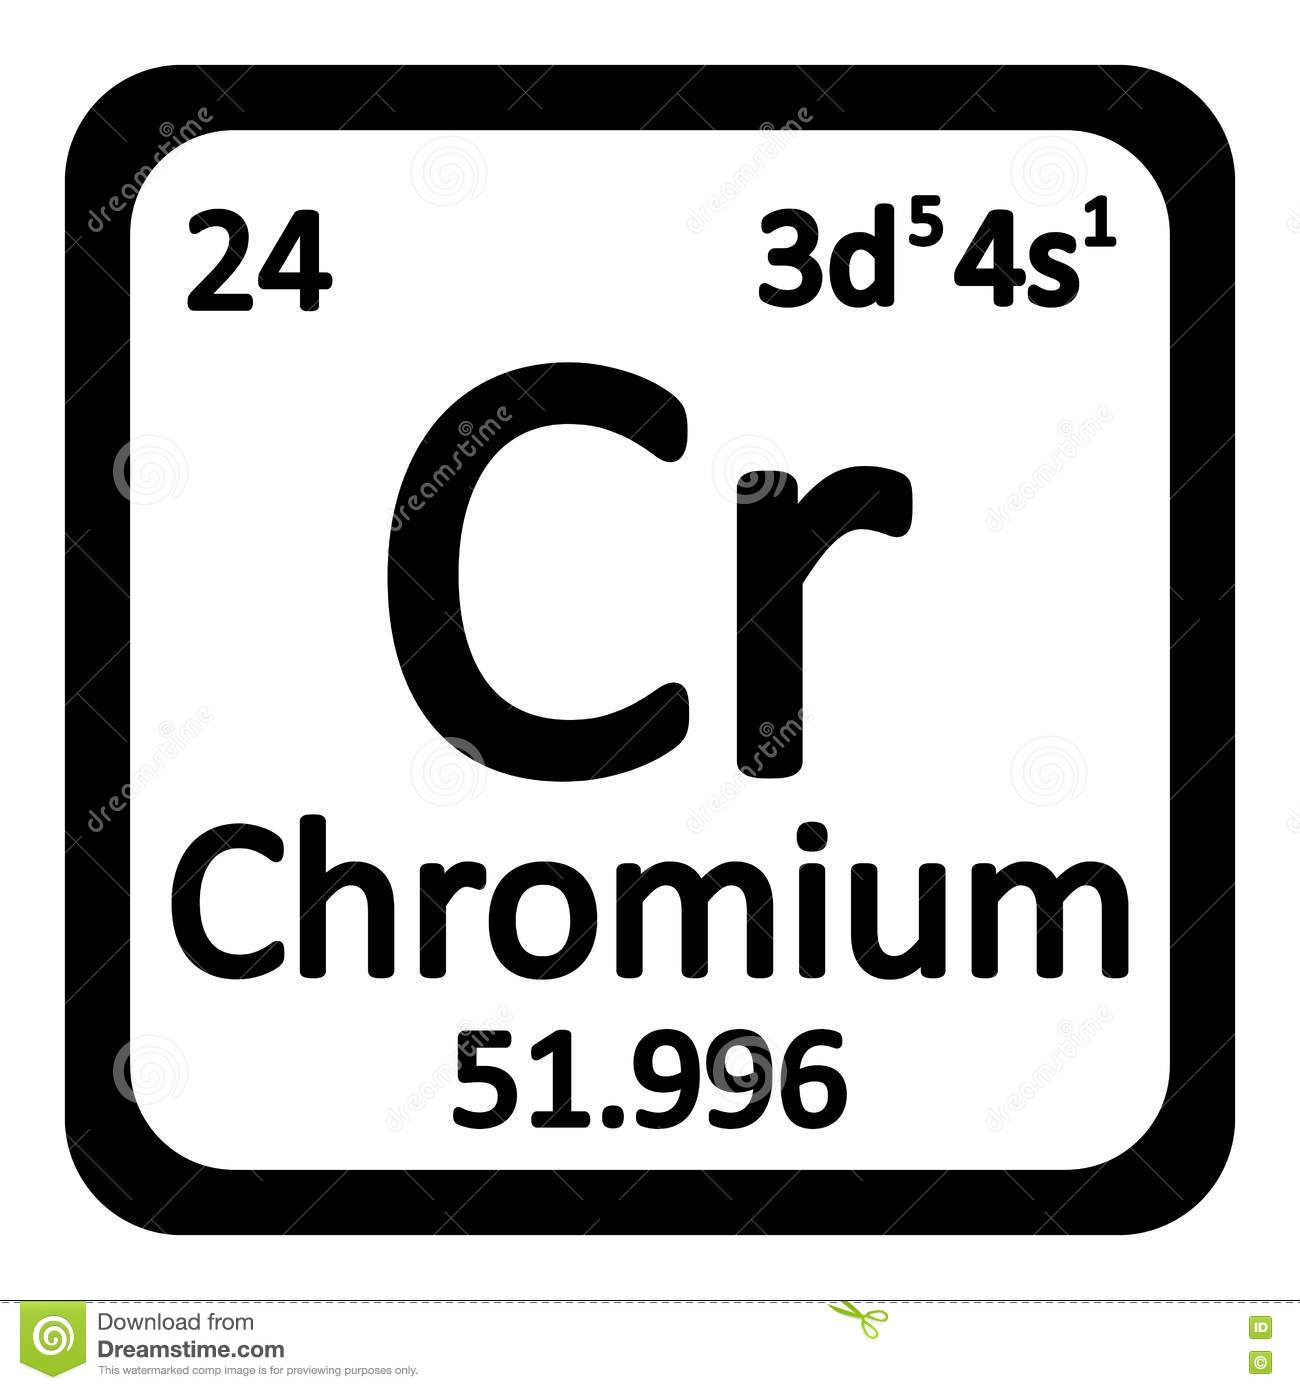 Chemical element chromium from the periodic table stock periodic table element chromium icon royalty free stock image buycottarizona